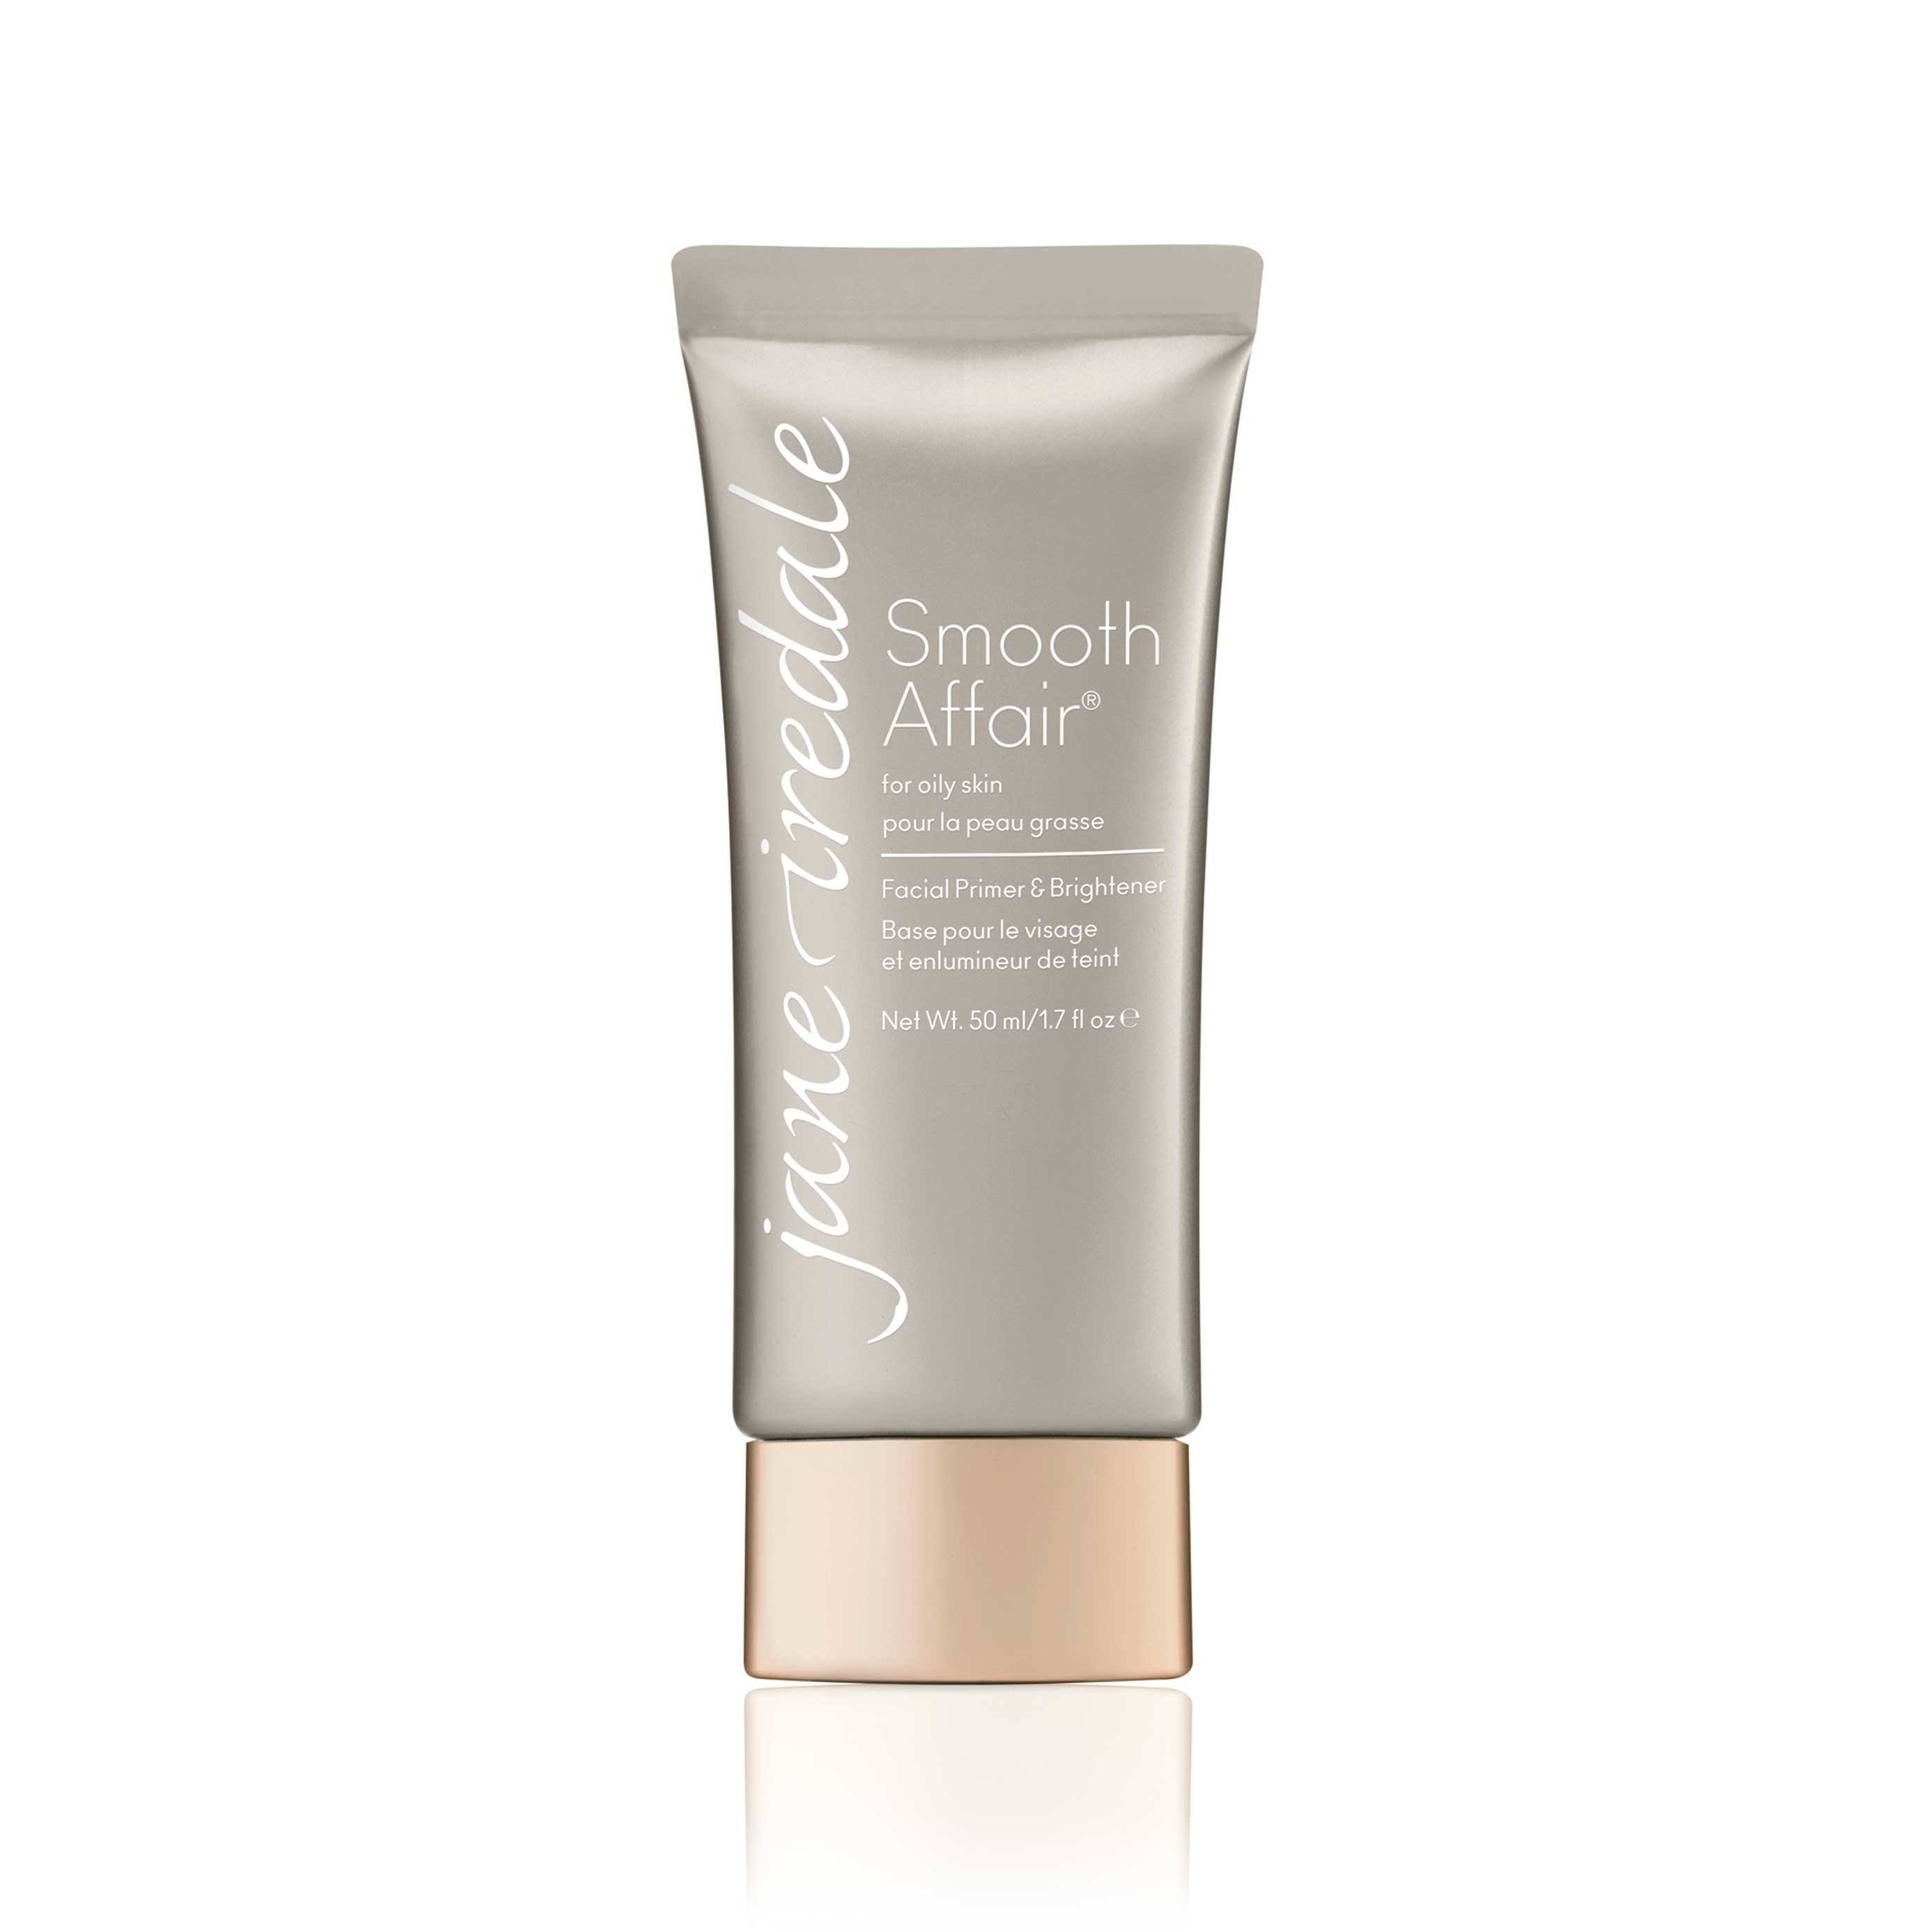 smooth-affair-for-oily-skin-facial-primer-brightener